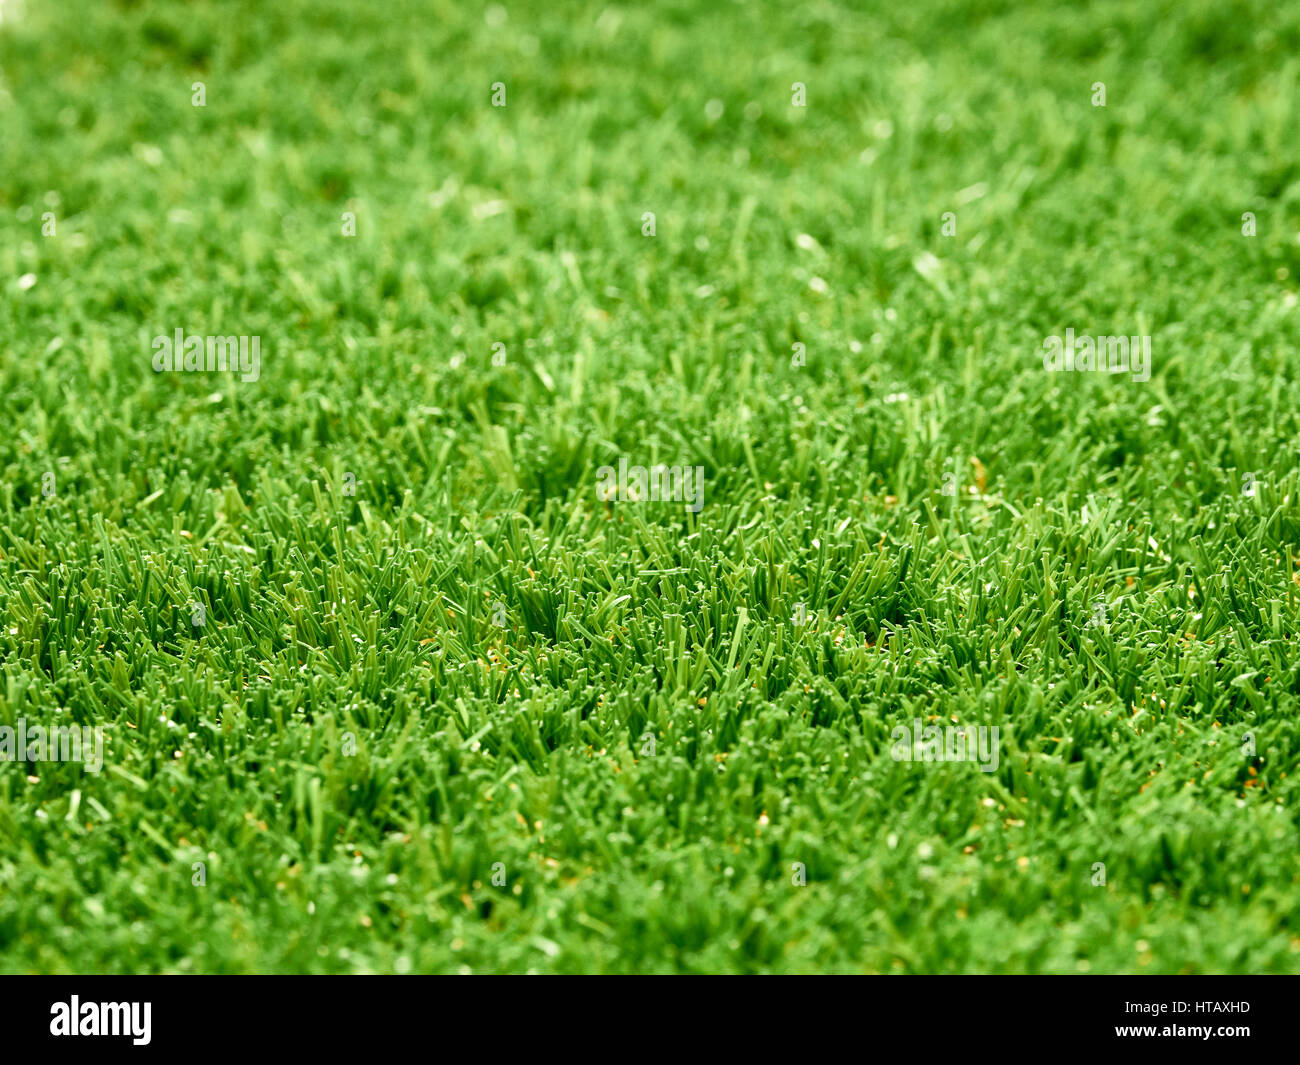 45 degree angled view of green astro turf grass, abstract lawn. - Stock Image